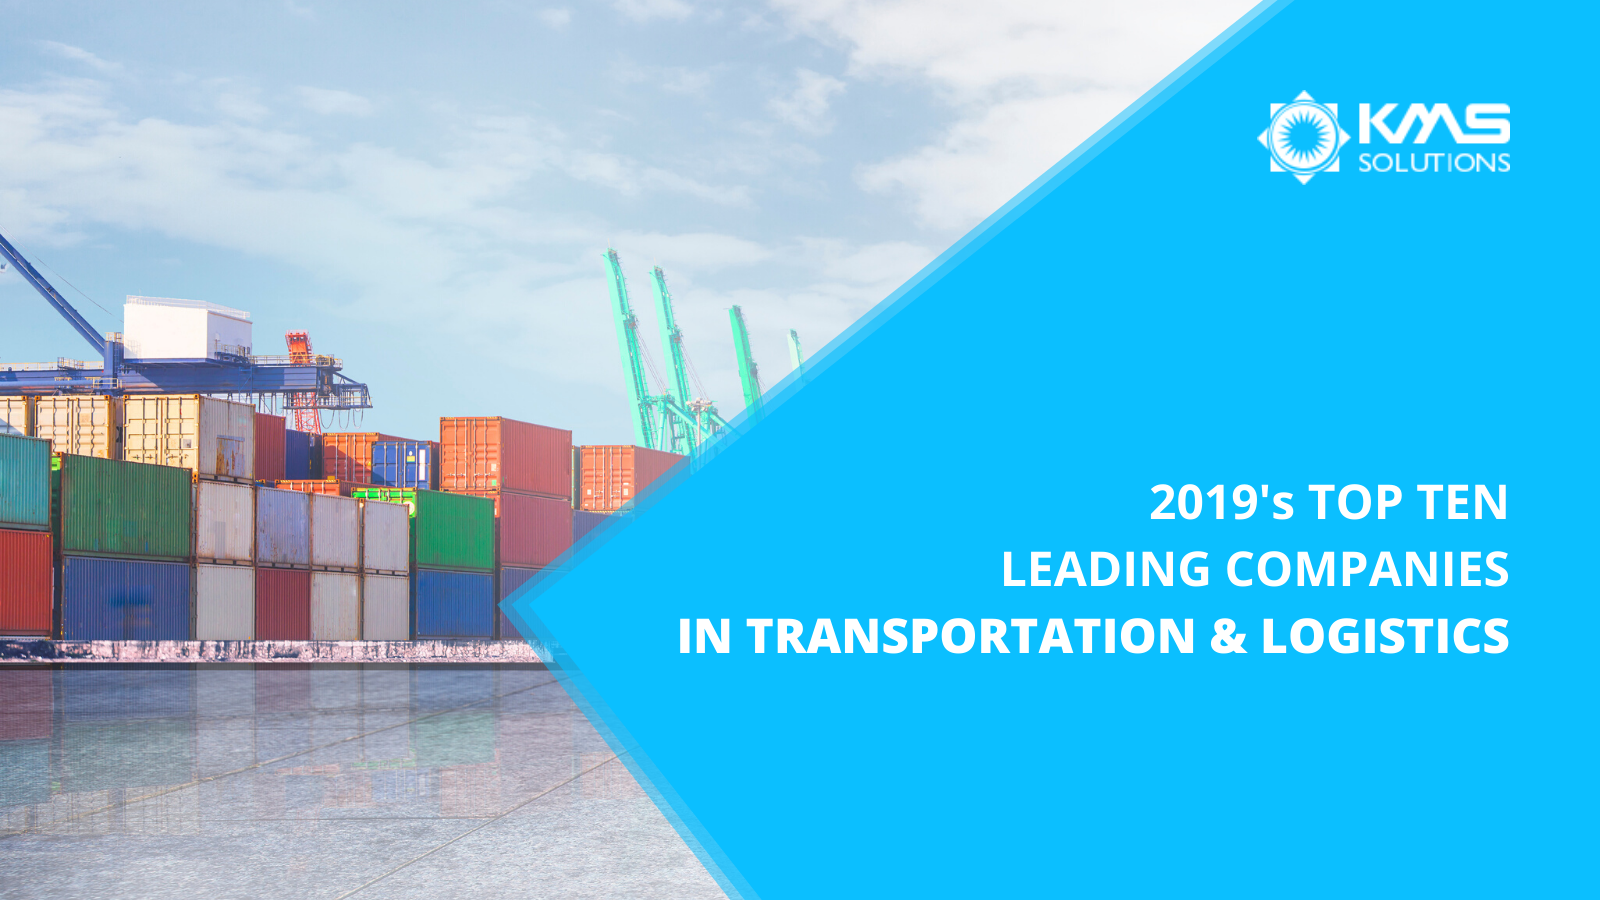 2019_top_10_leading_companies_in_transportation_logistics_kms_solutions